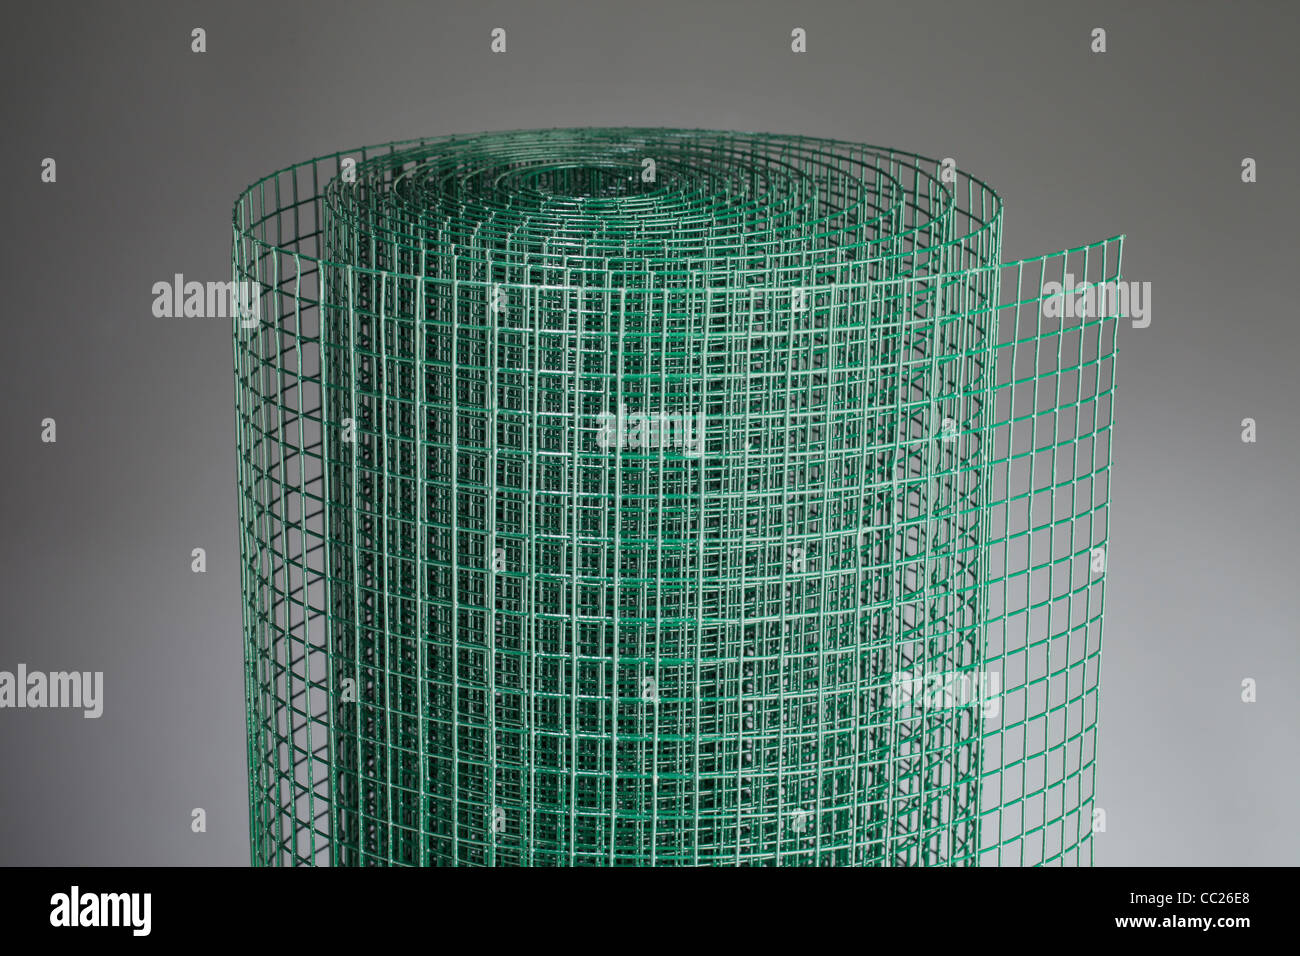 Coated green metallic wire mesh used in gardening by protecting plants from animals. Stock Photo